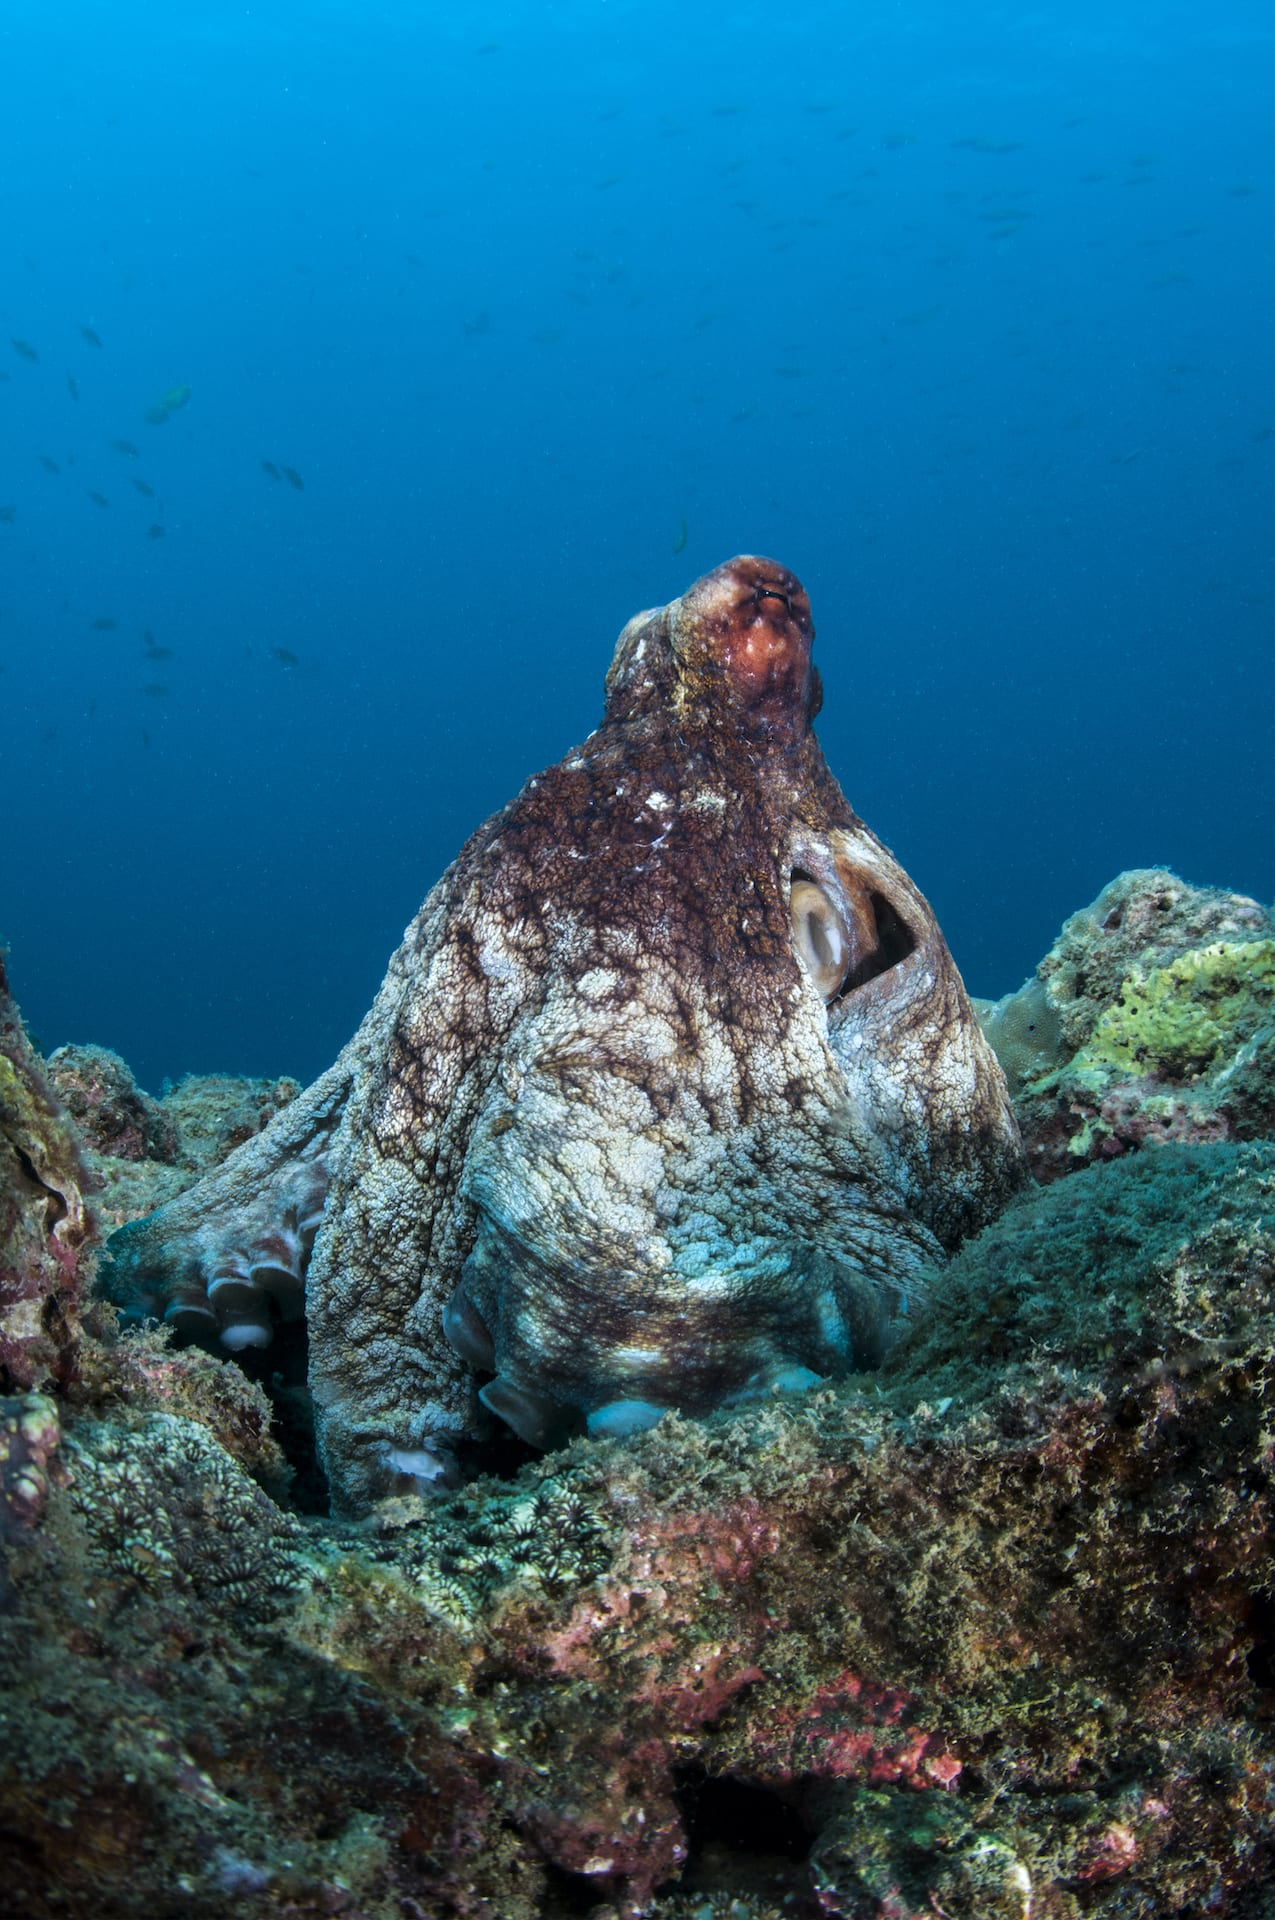 Octopuses use their eight limbs to crawl along the ocean's floor, sticking their arms into gaps and holes in search of food. This photograph was taken on the Andaman reefs, where the common reef octopus (Octopus cyanea)  is widespread, though it is hard to conclusively identify the octopus in this frame. Photo: Tasneem Khan  Cover photo: The octopus is a round-bodied, eight-armed mollusc that lives on the ocean floor. Occasionally some species step out of the sea to hunt in tidepools. Cover photo: Dhritiman Mukherjee